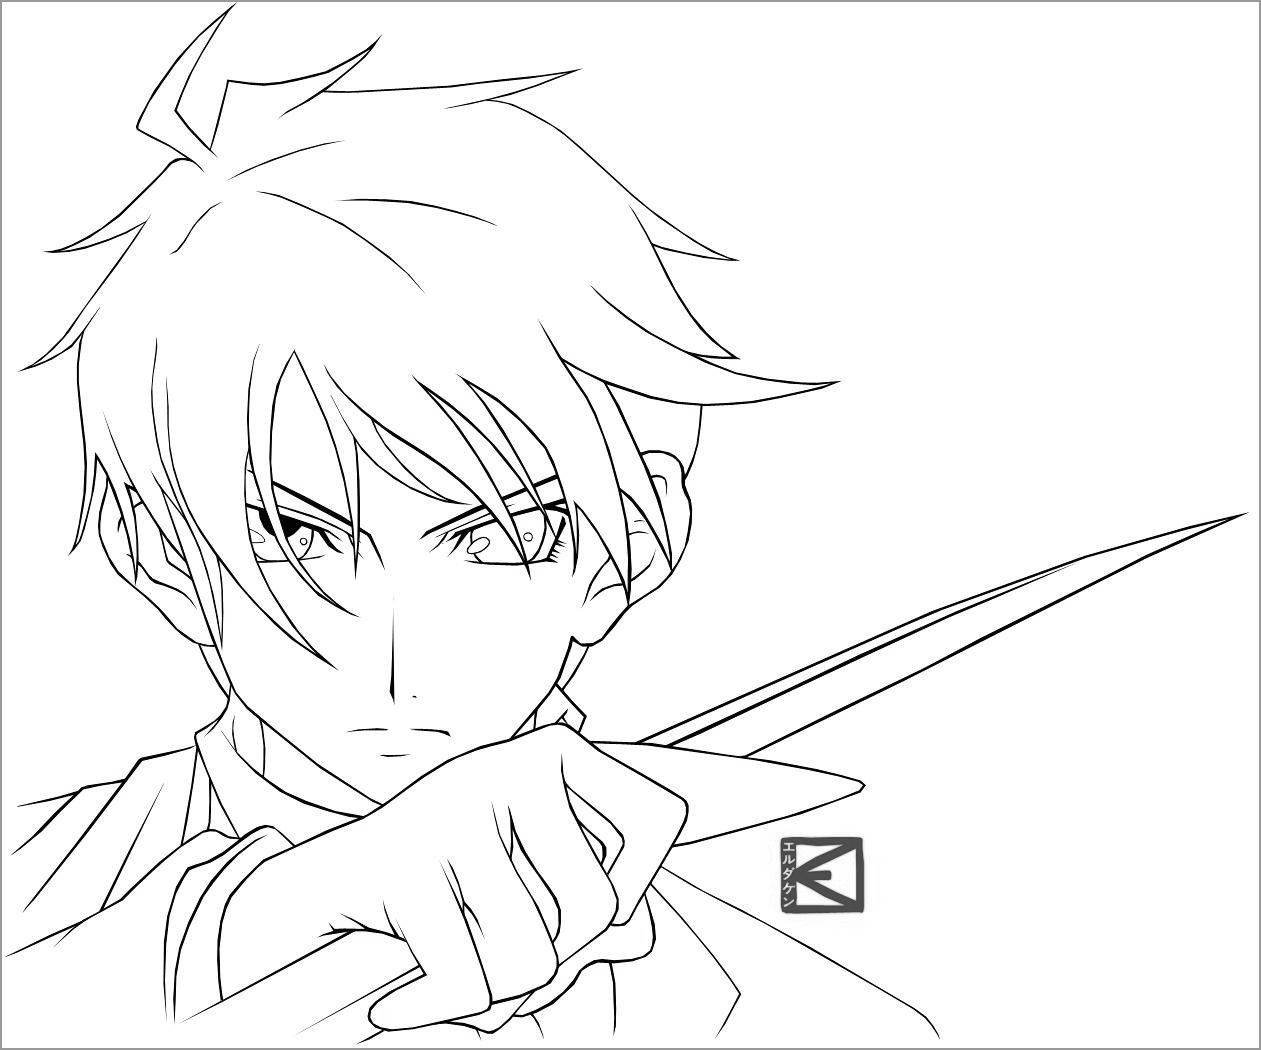 Anime Boy Coloring Pages Character In 2021 Anime Anime Drawings Coloring Pages For Boys [ 1050 x 1261 Pixel ]